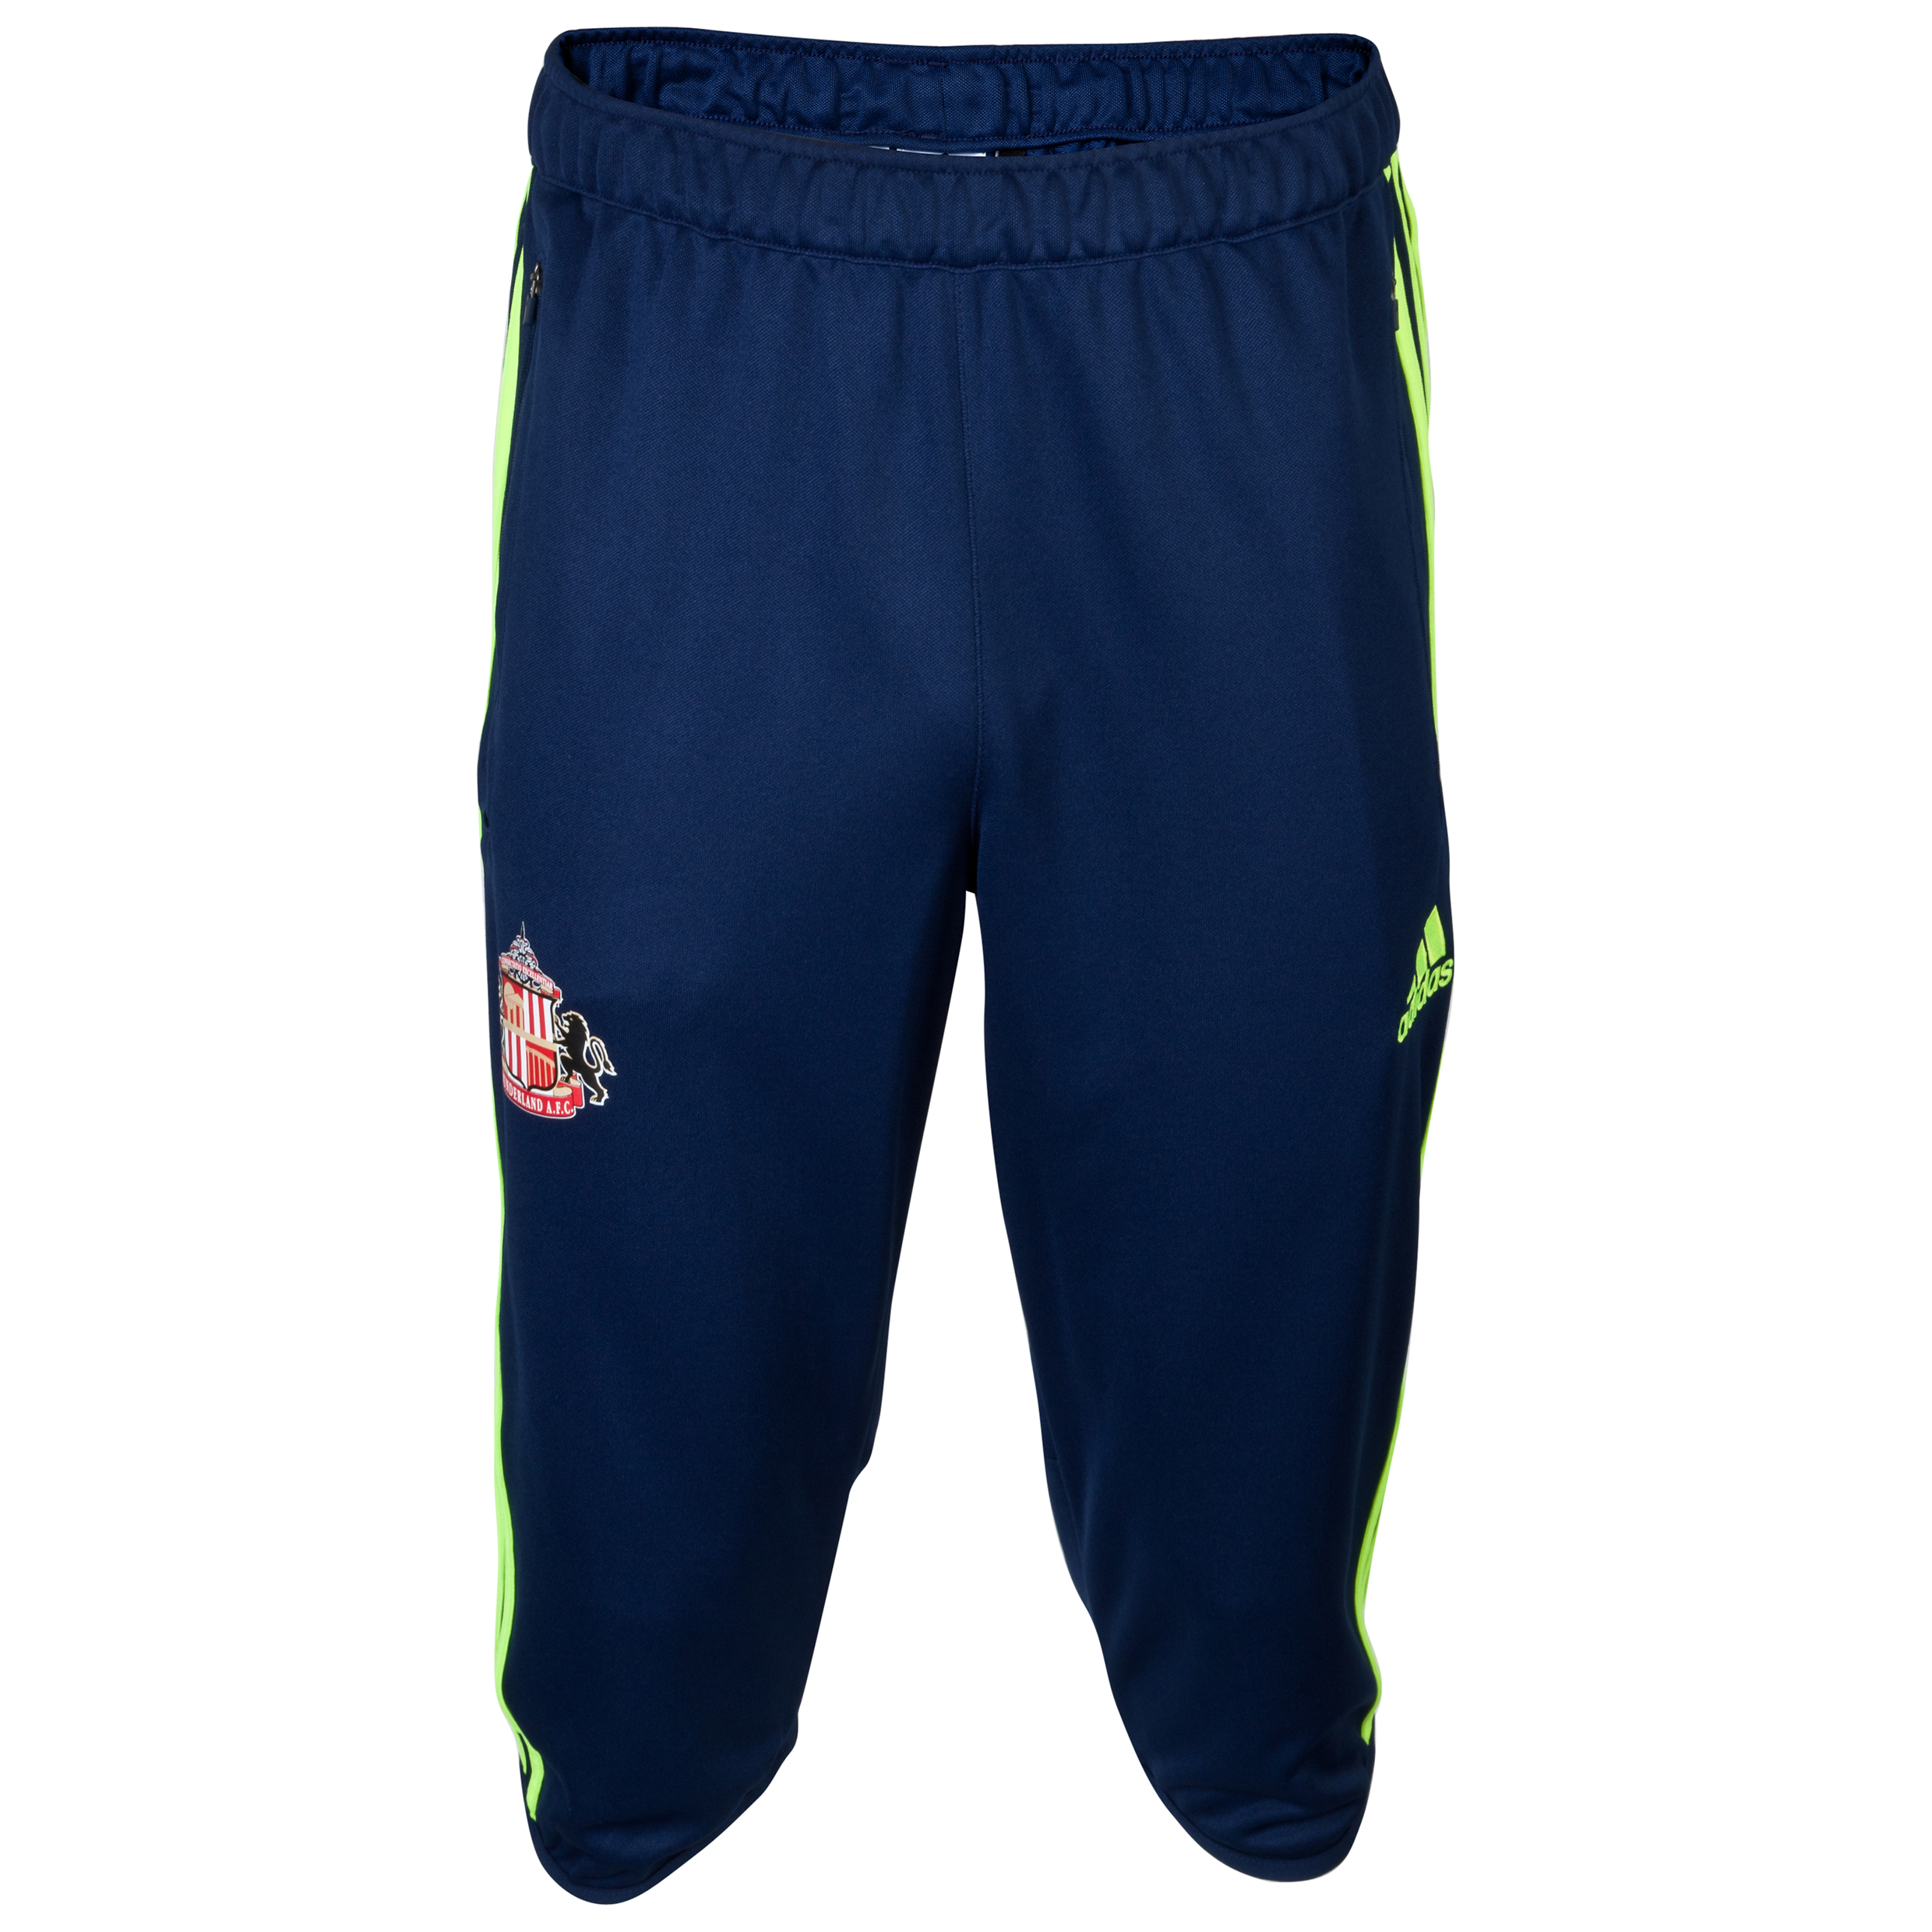 Sunderland Tiro Training 3/4 Pant Navy